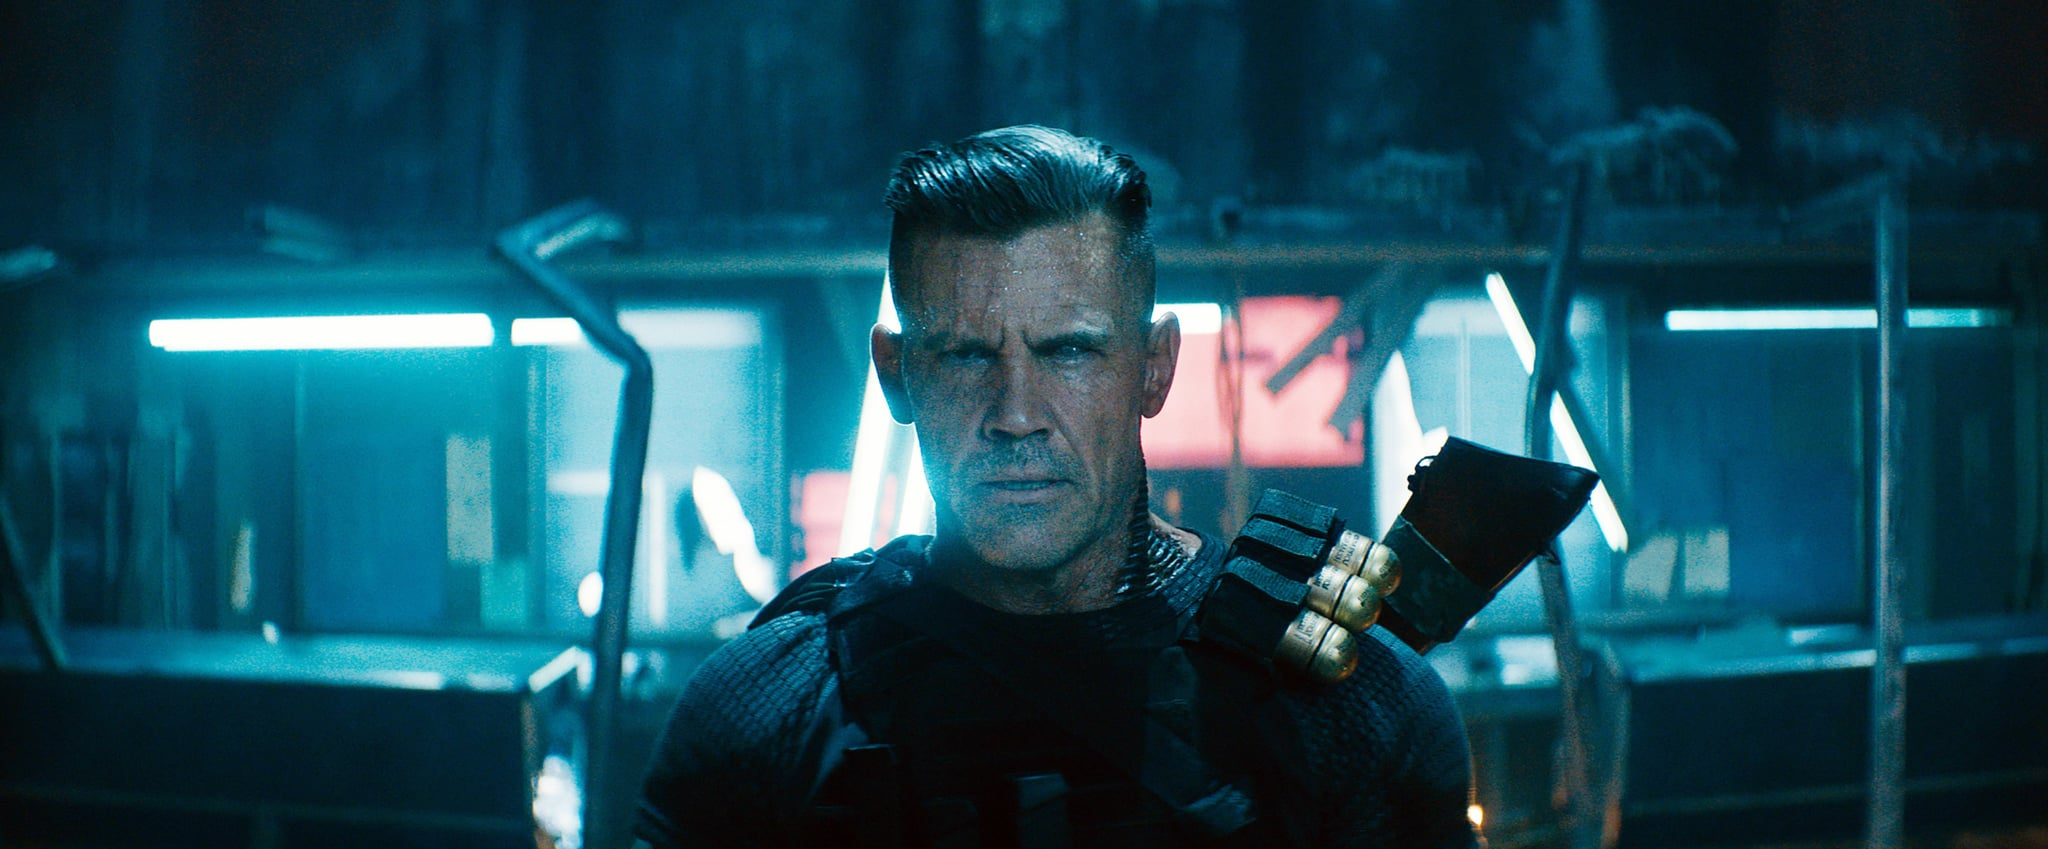 DEADPOOL 2, Josh Brolin as Cable, 2018. TM & Copyright  20th Century Fox Film Corp. All rights reserved./courtesy Everett Collection